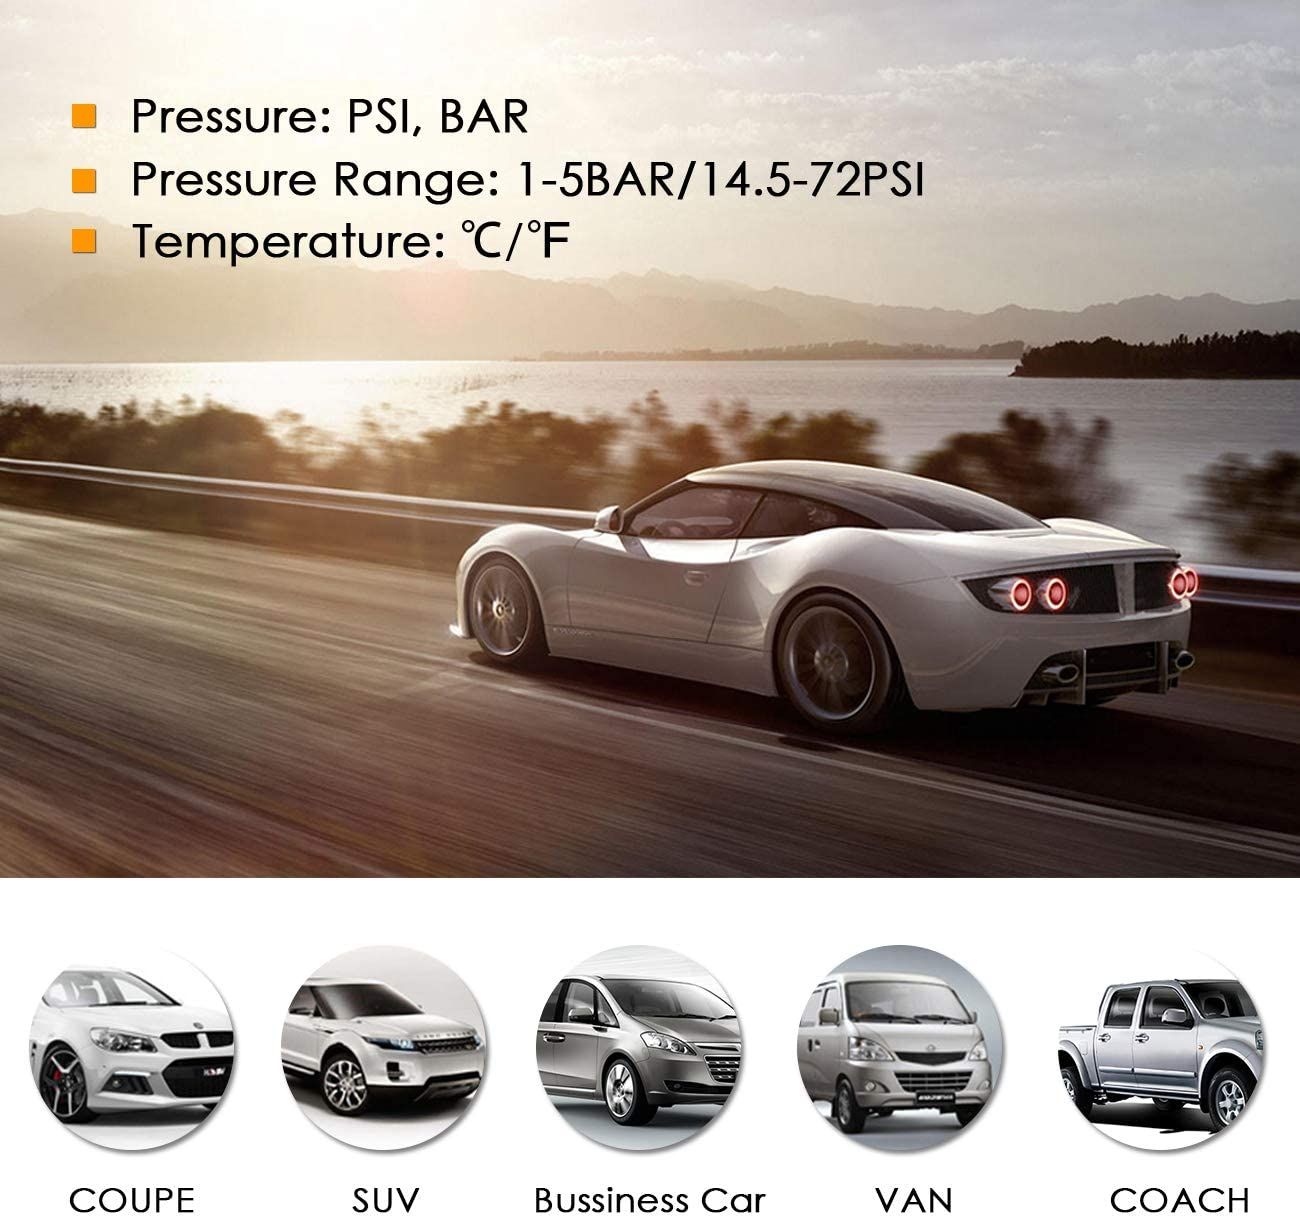 1-5BAR//14.5-72PSI Favoto TPMS Car Tire Pressure Monitoring System Solar Power LCD Screen Universal 4 External TPMS Sensors Real-time Monitor Tires Pressure /& Temperature